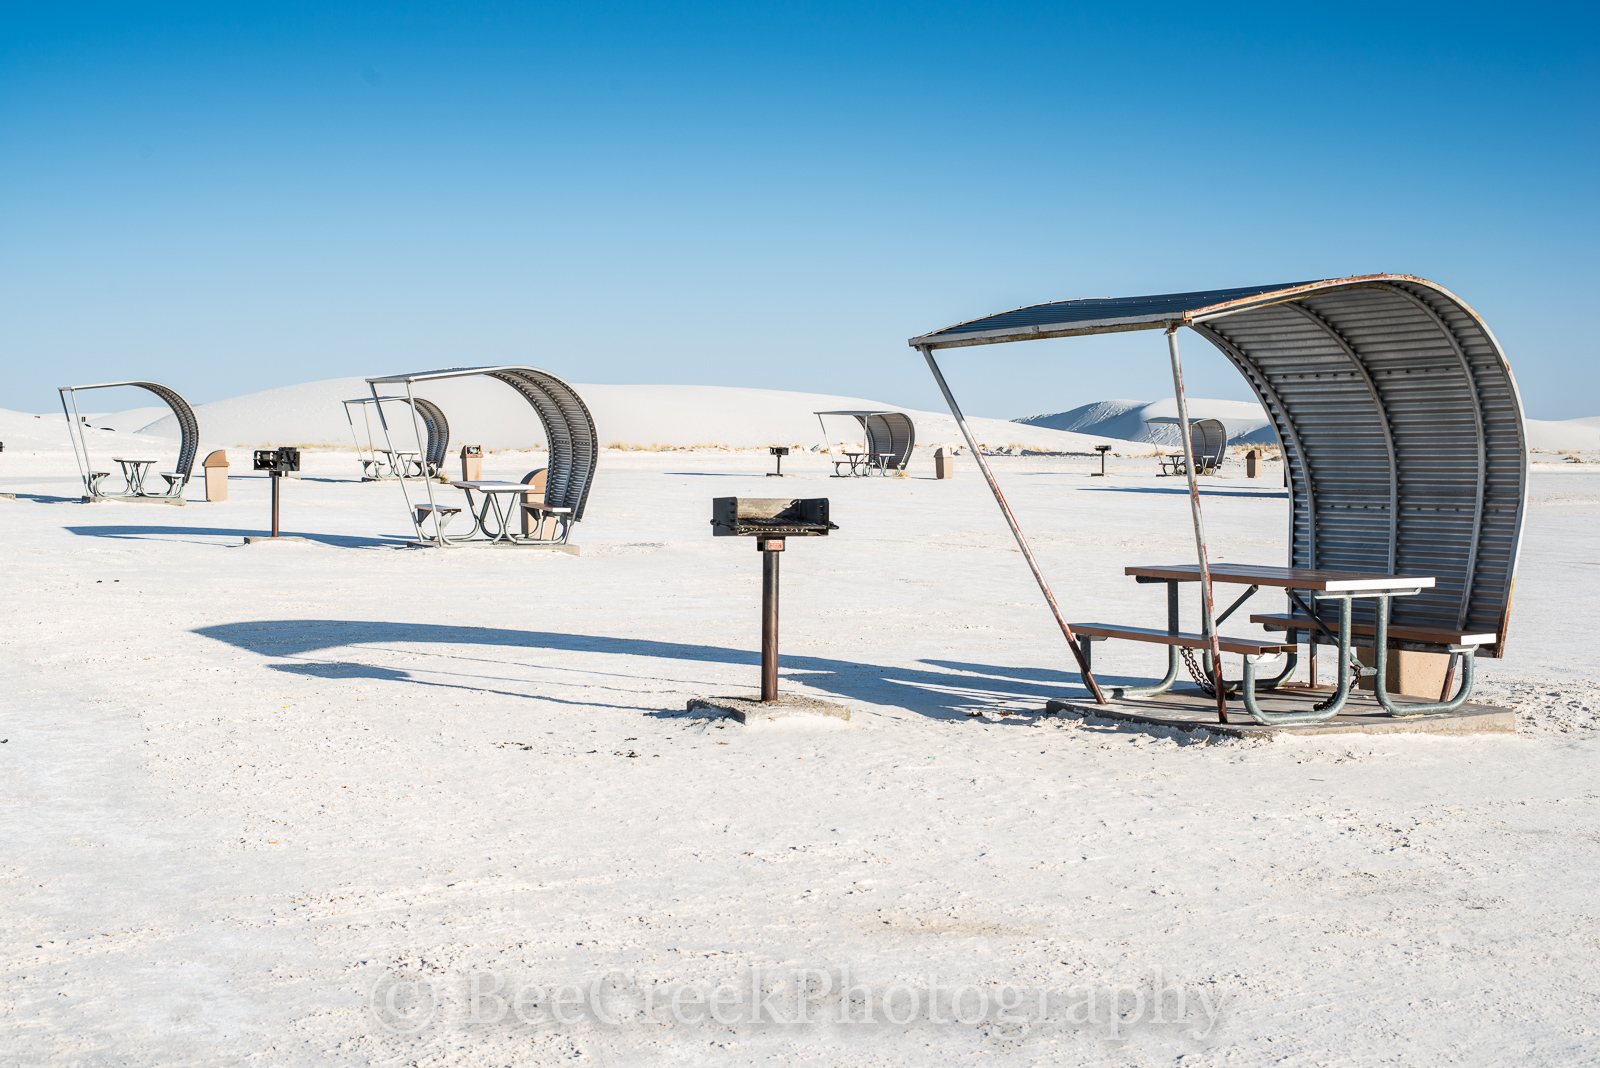 White Sands,  picnic area, Alamagorda nm, New Mexico, New Mexico Parks, Picnic tables at, Picnic tables with blue skys, White Sand National Monument, White sands, beautiful photos of white sands, dune, photo